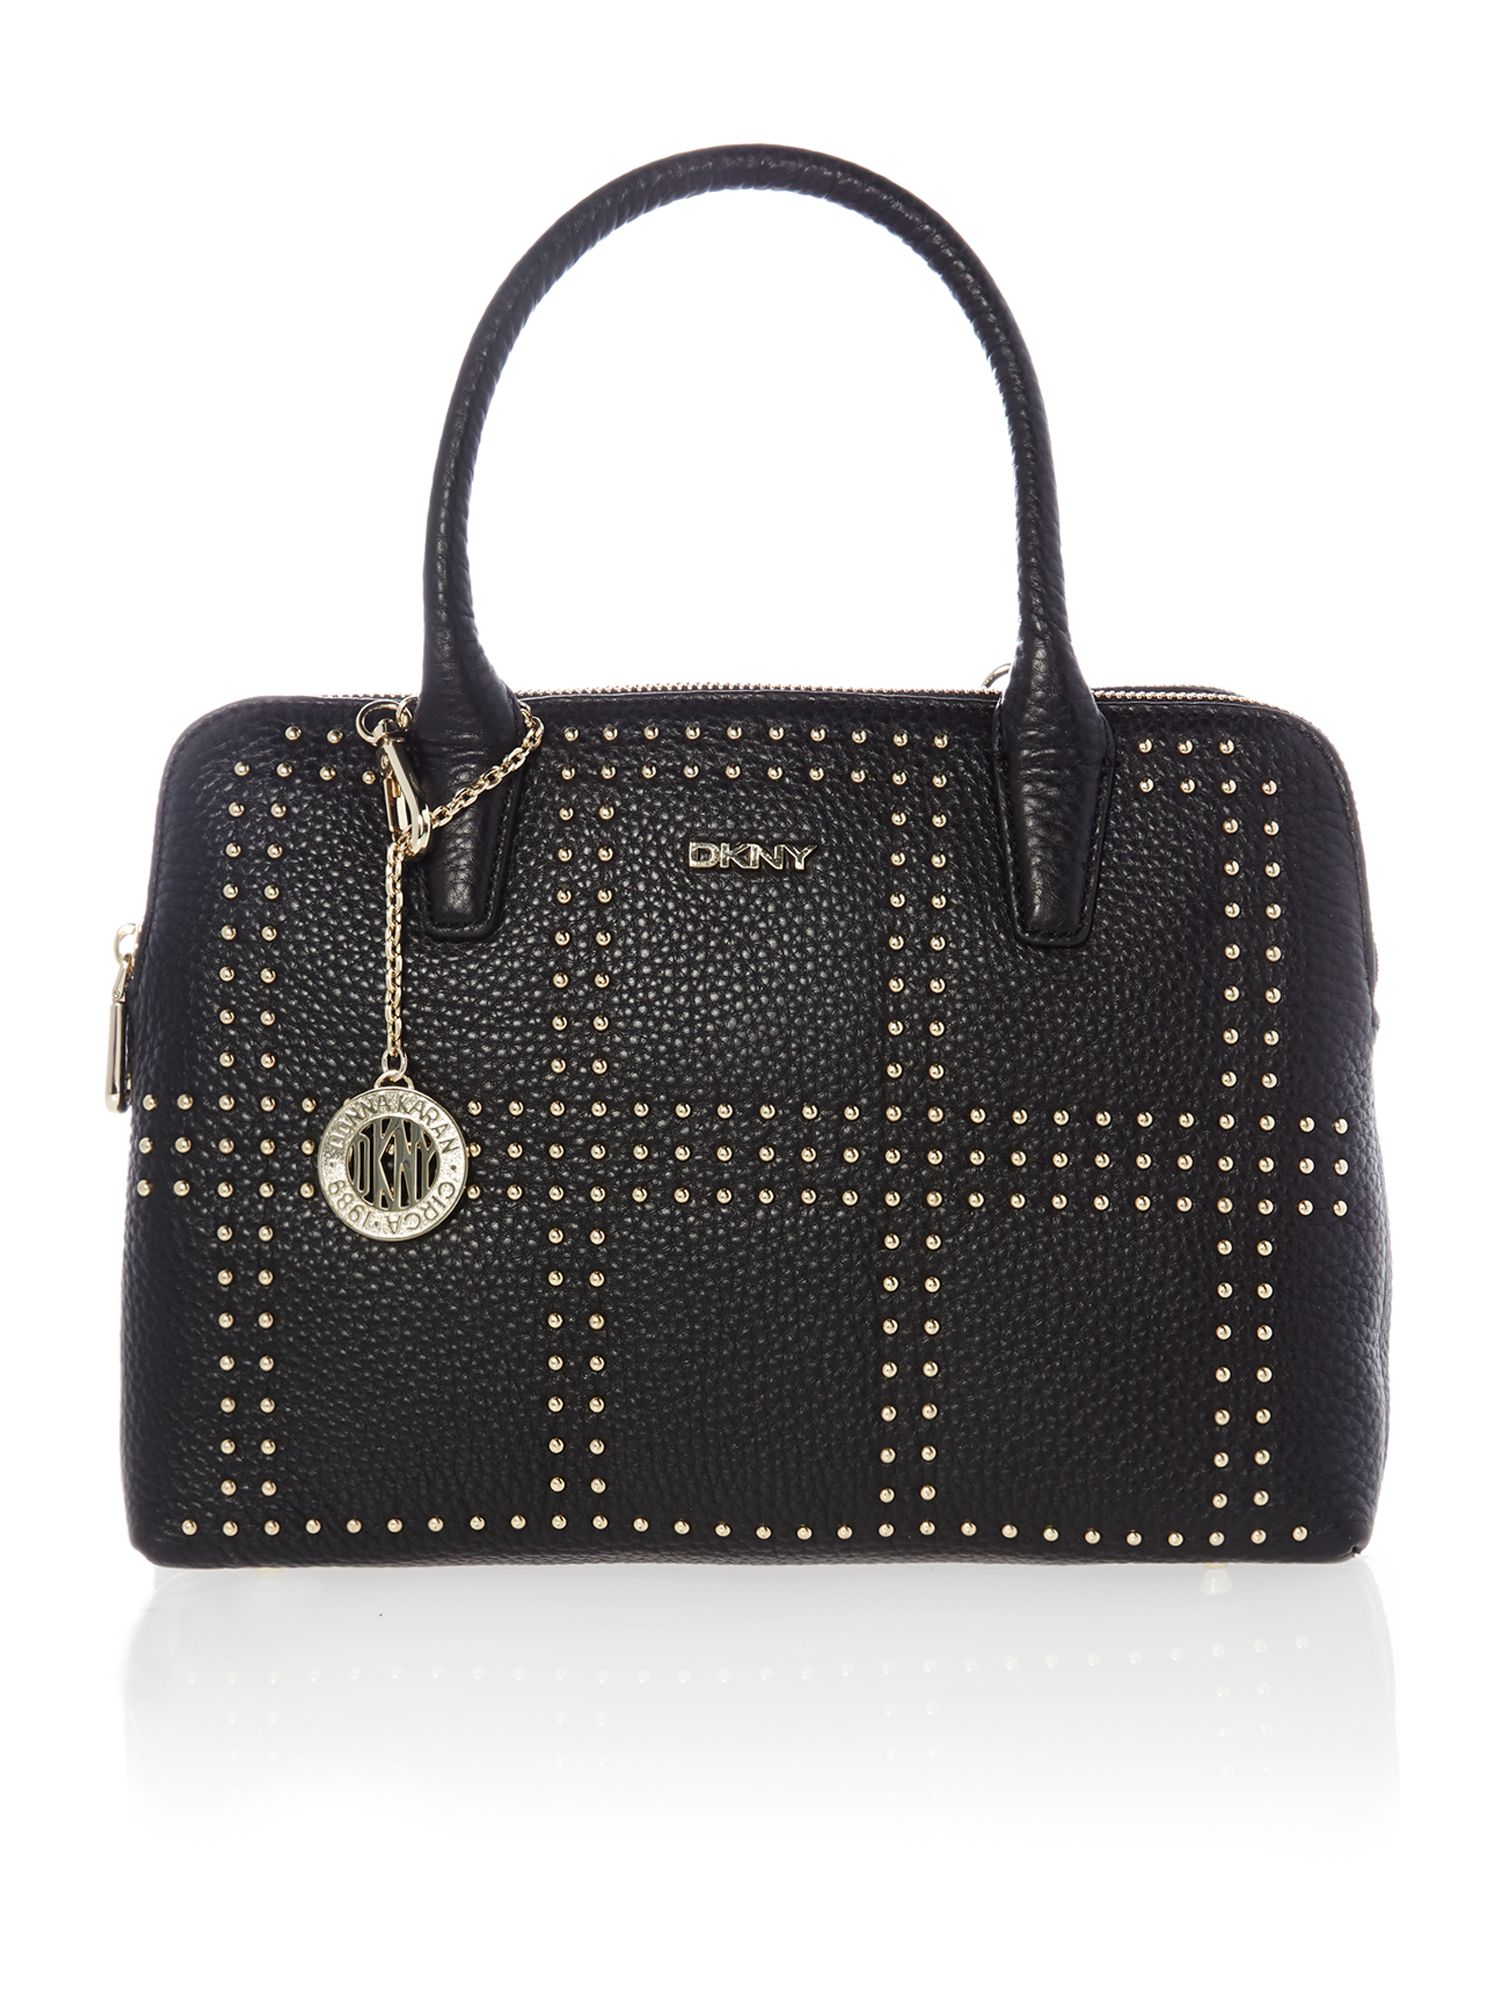 Tribeca black double zip satchel bag